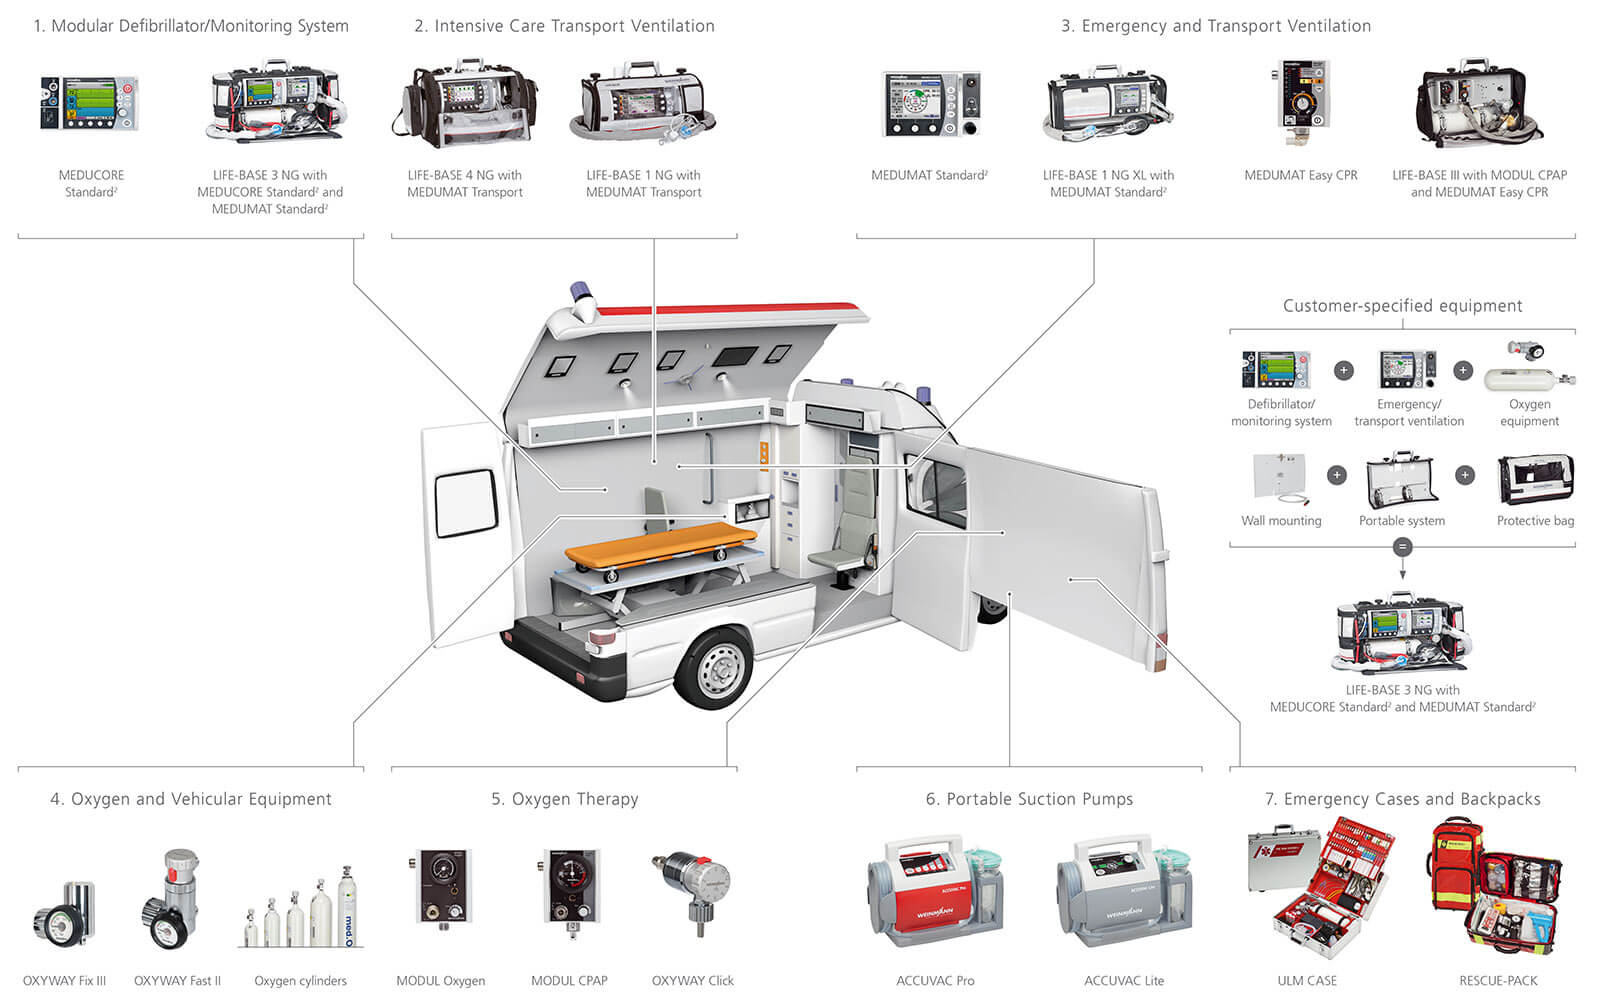 Overview ambulance equipment